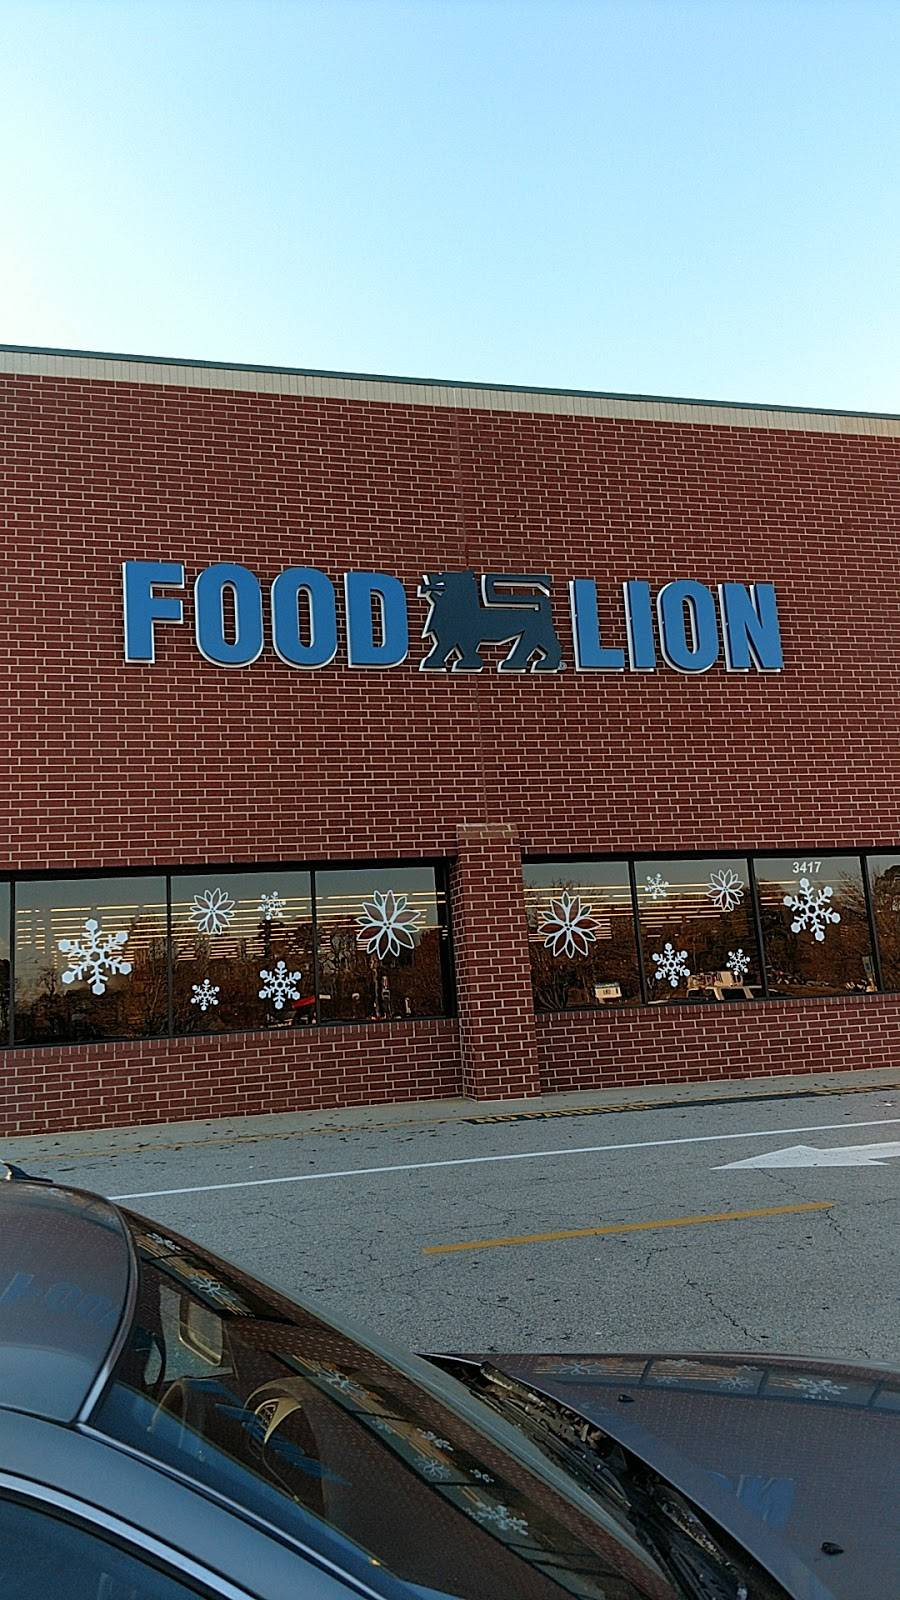 Food Lion - store  | Photo 1 of 9 | Address: 3417 N Main St, Fuquay-Varina, NC 27526, USA | Phone: (919) 577-0555